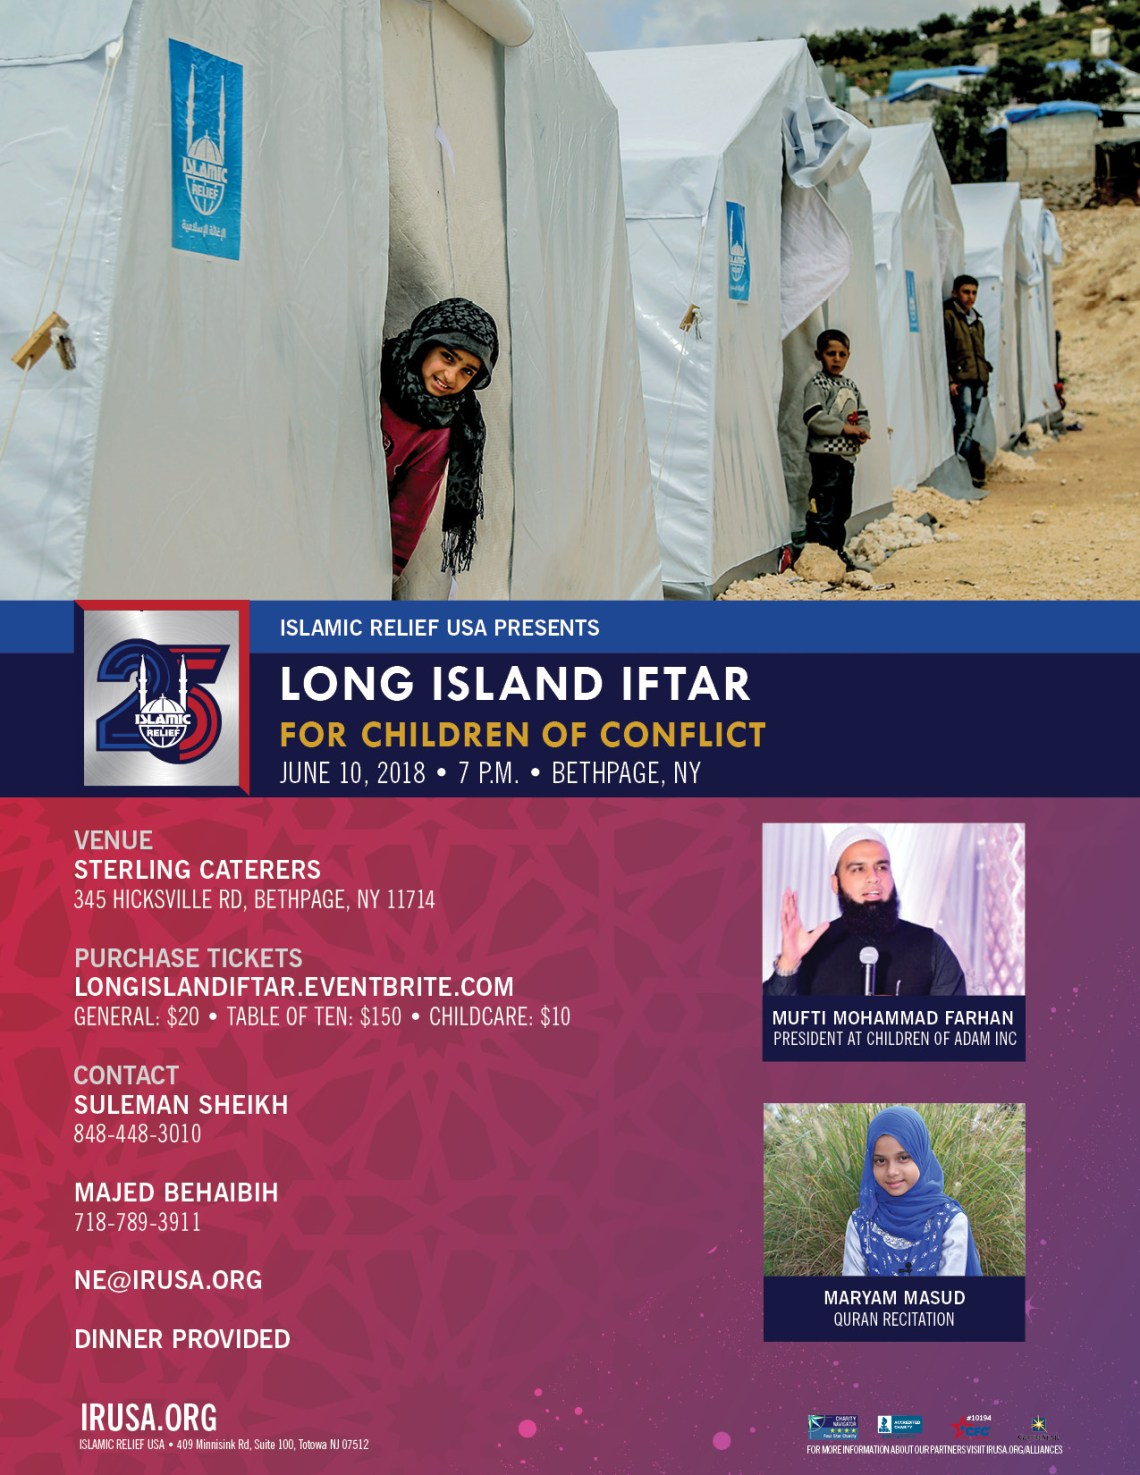 Long Island: Benefit Iftar for Children in Conflict